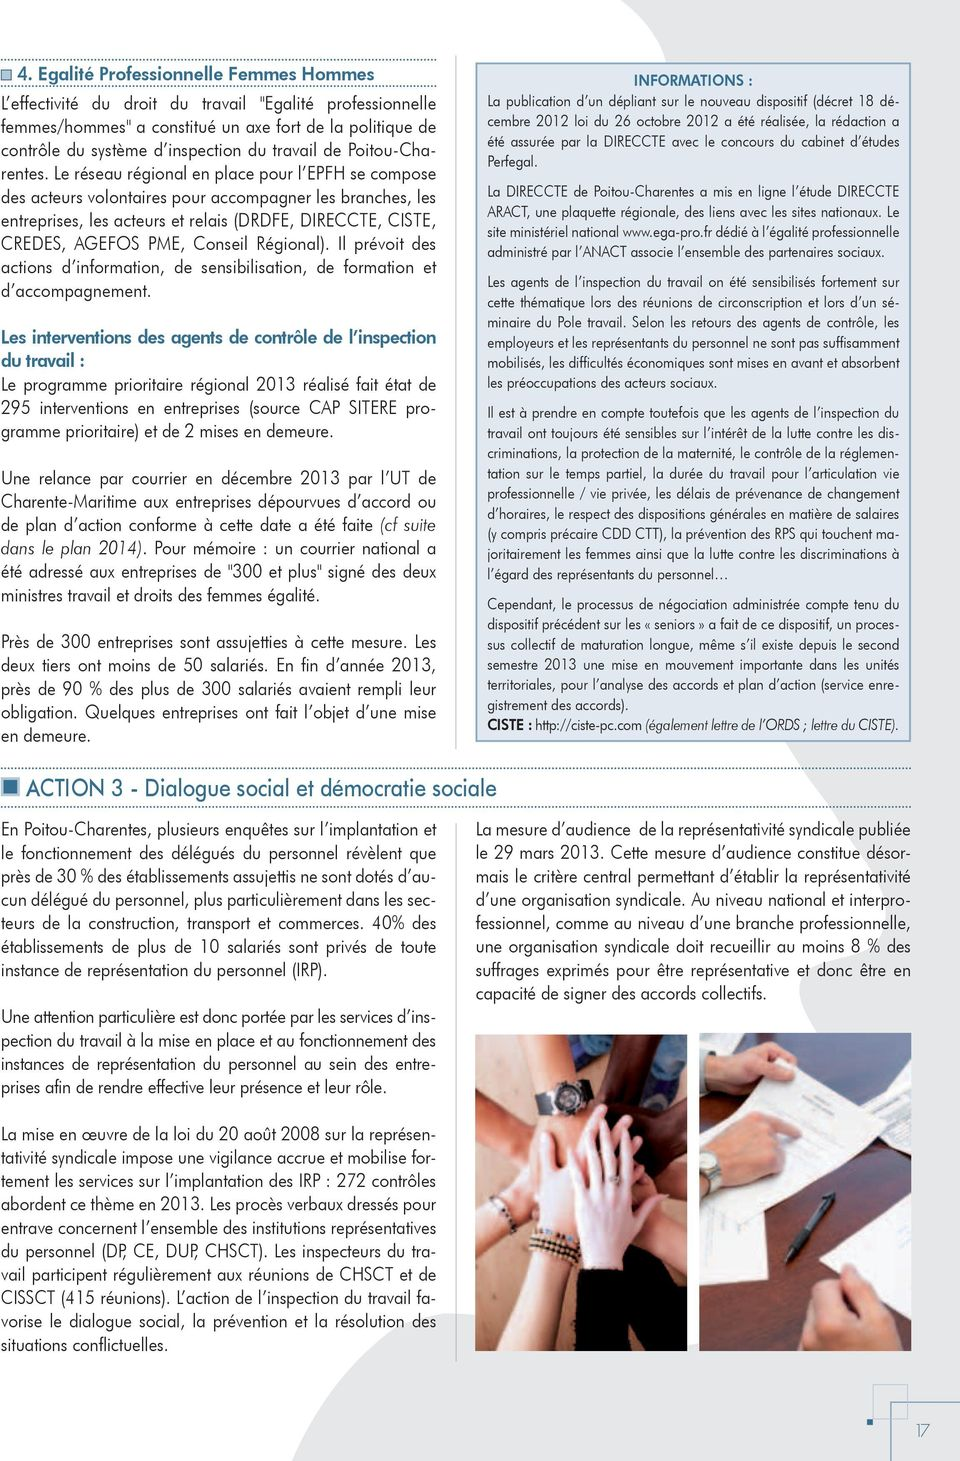 Inspection du travail pdf - Inspection du travail bourges ...